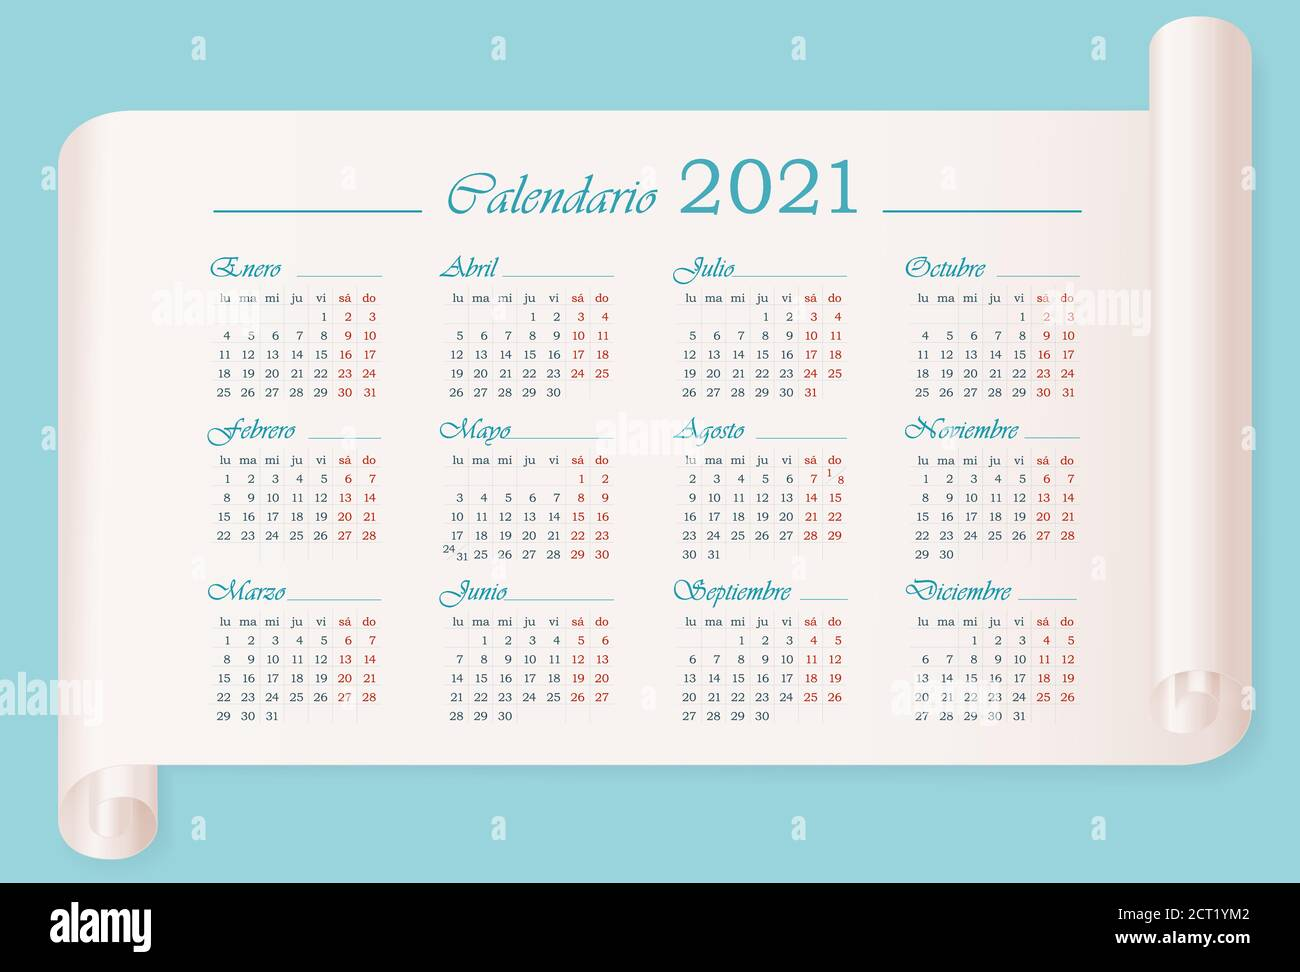 September Calendar Spanish High Resolution Stock Photography and